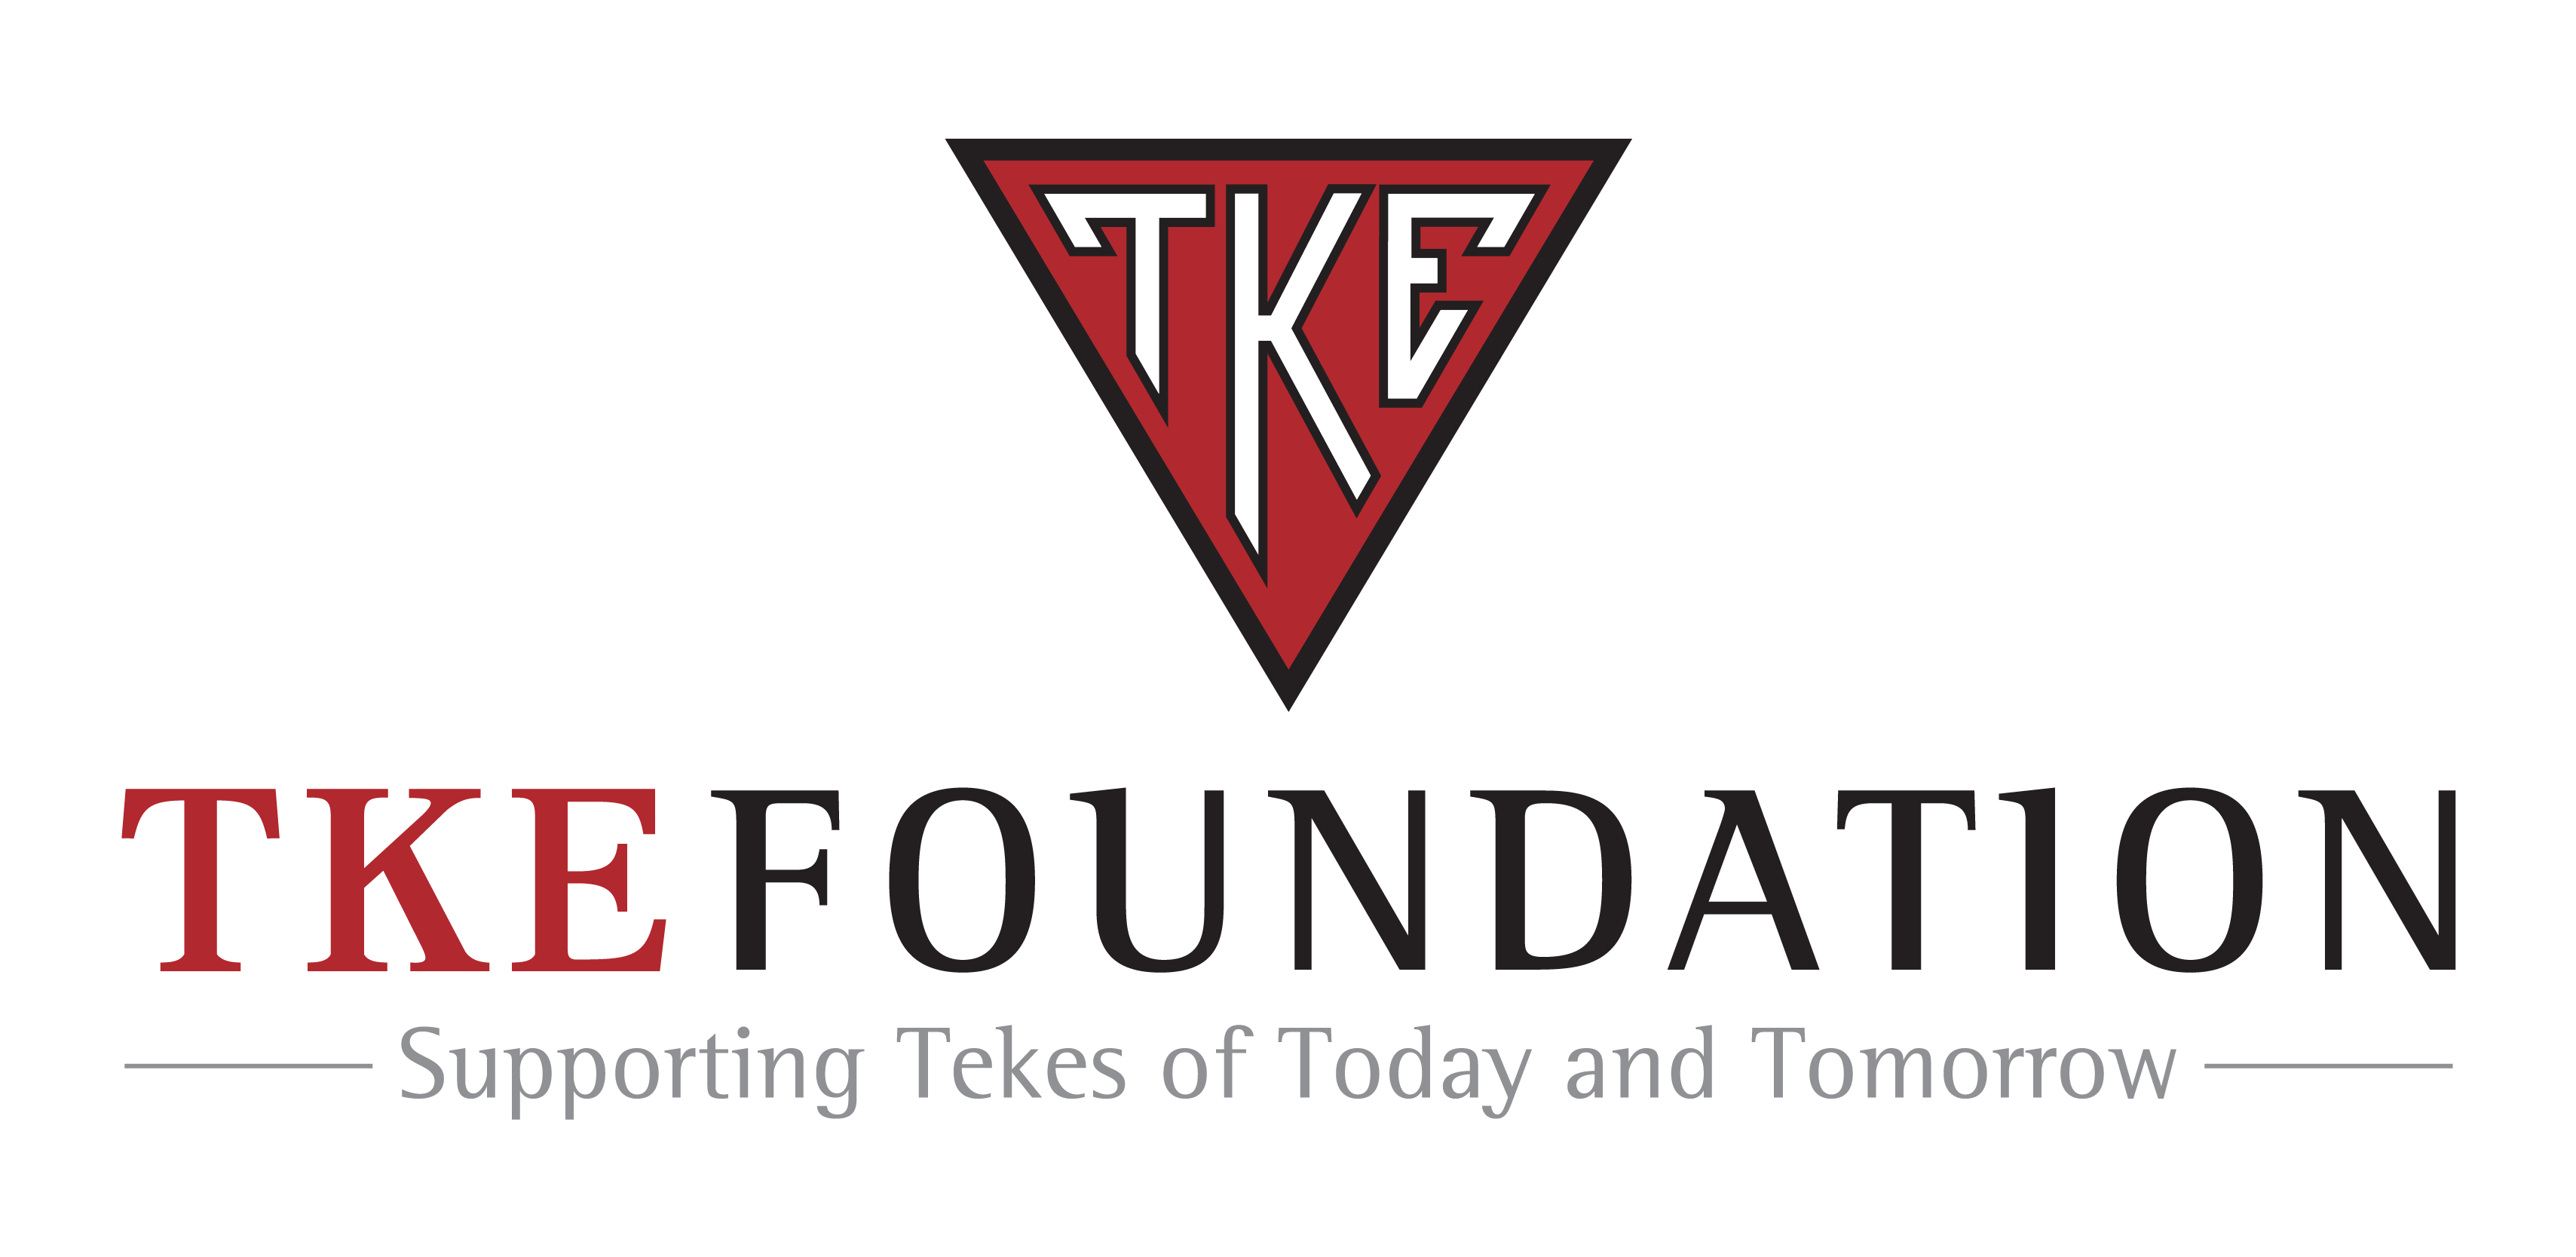 TKE International Sweetheart Scholarship Renamed, Applications Open